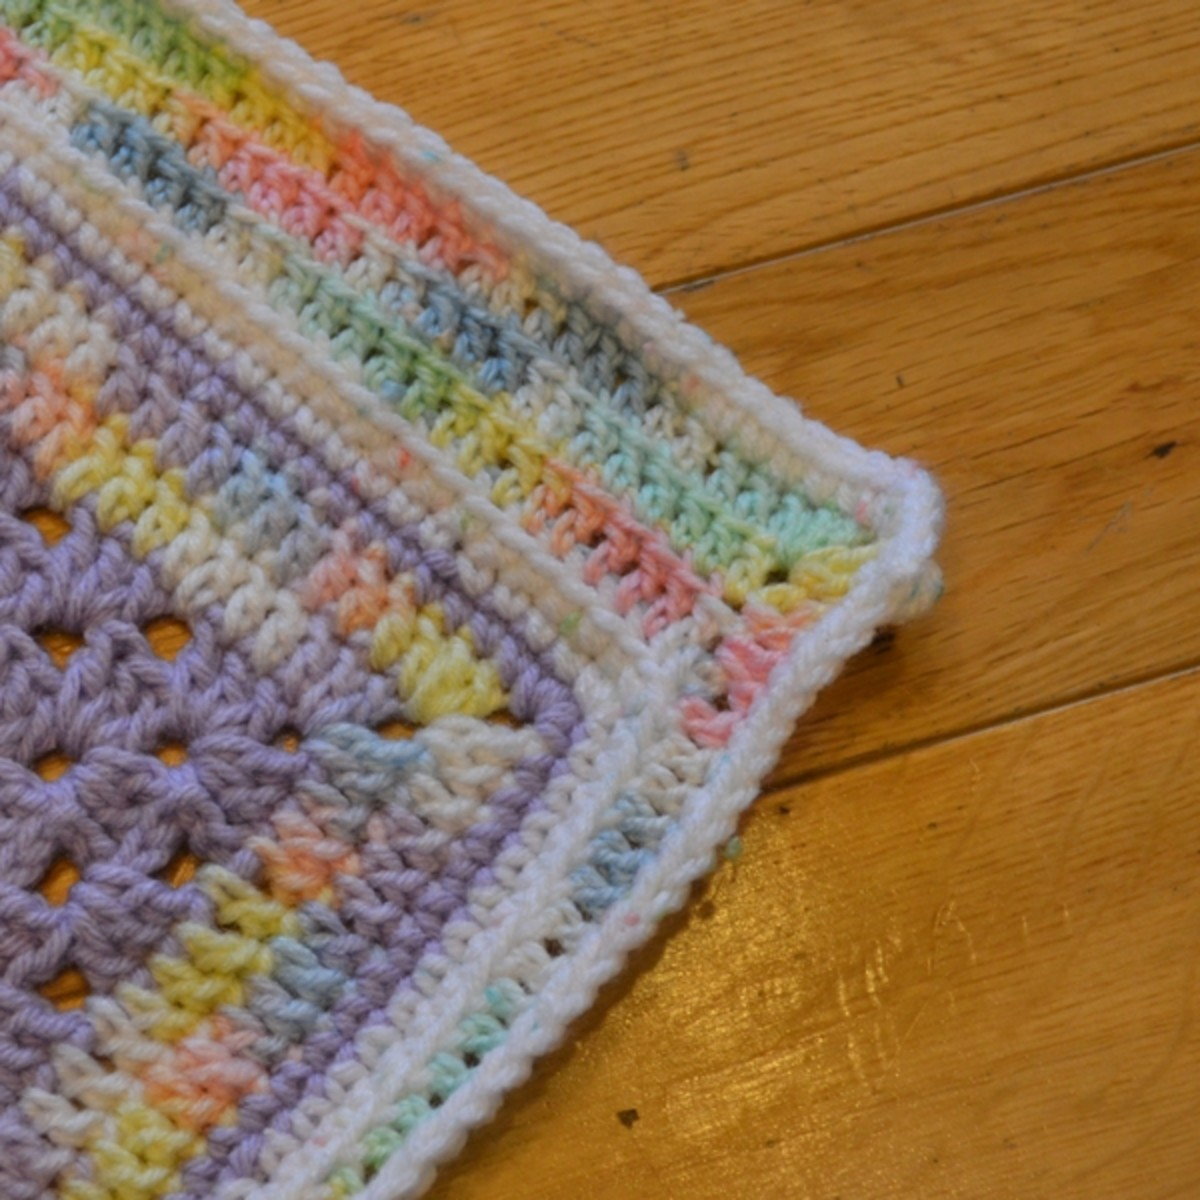 Pastel colored baby afghan border showcasing different colors.